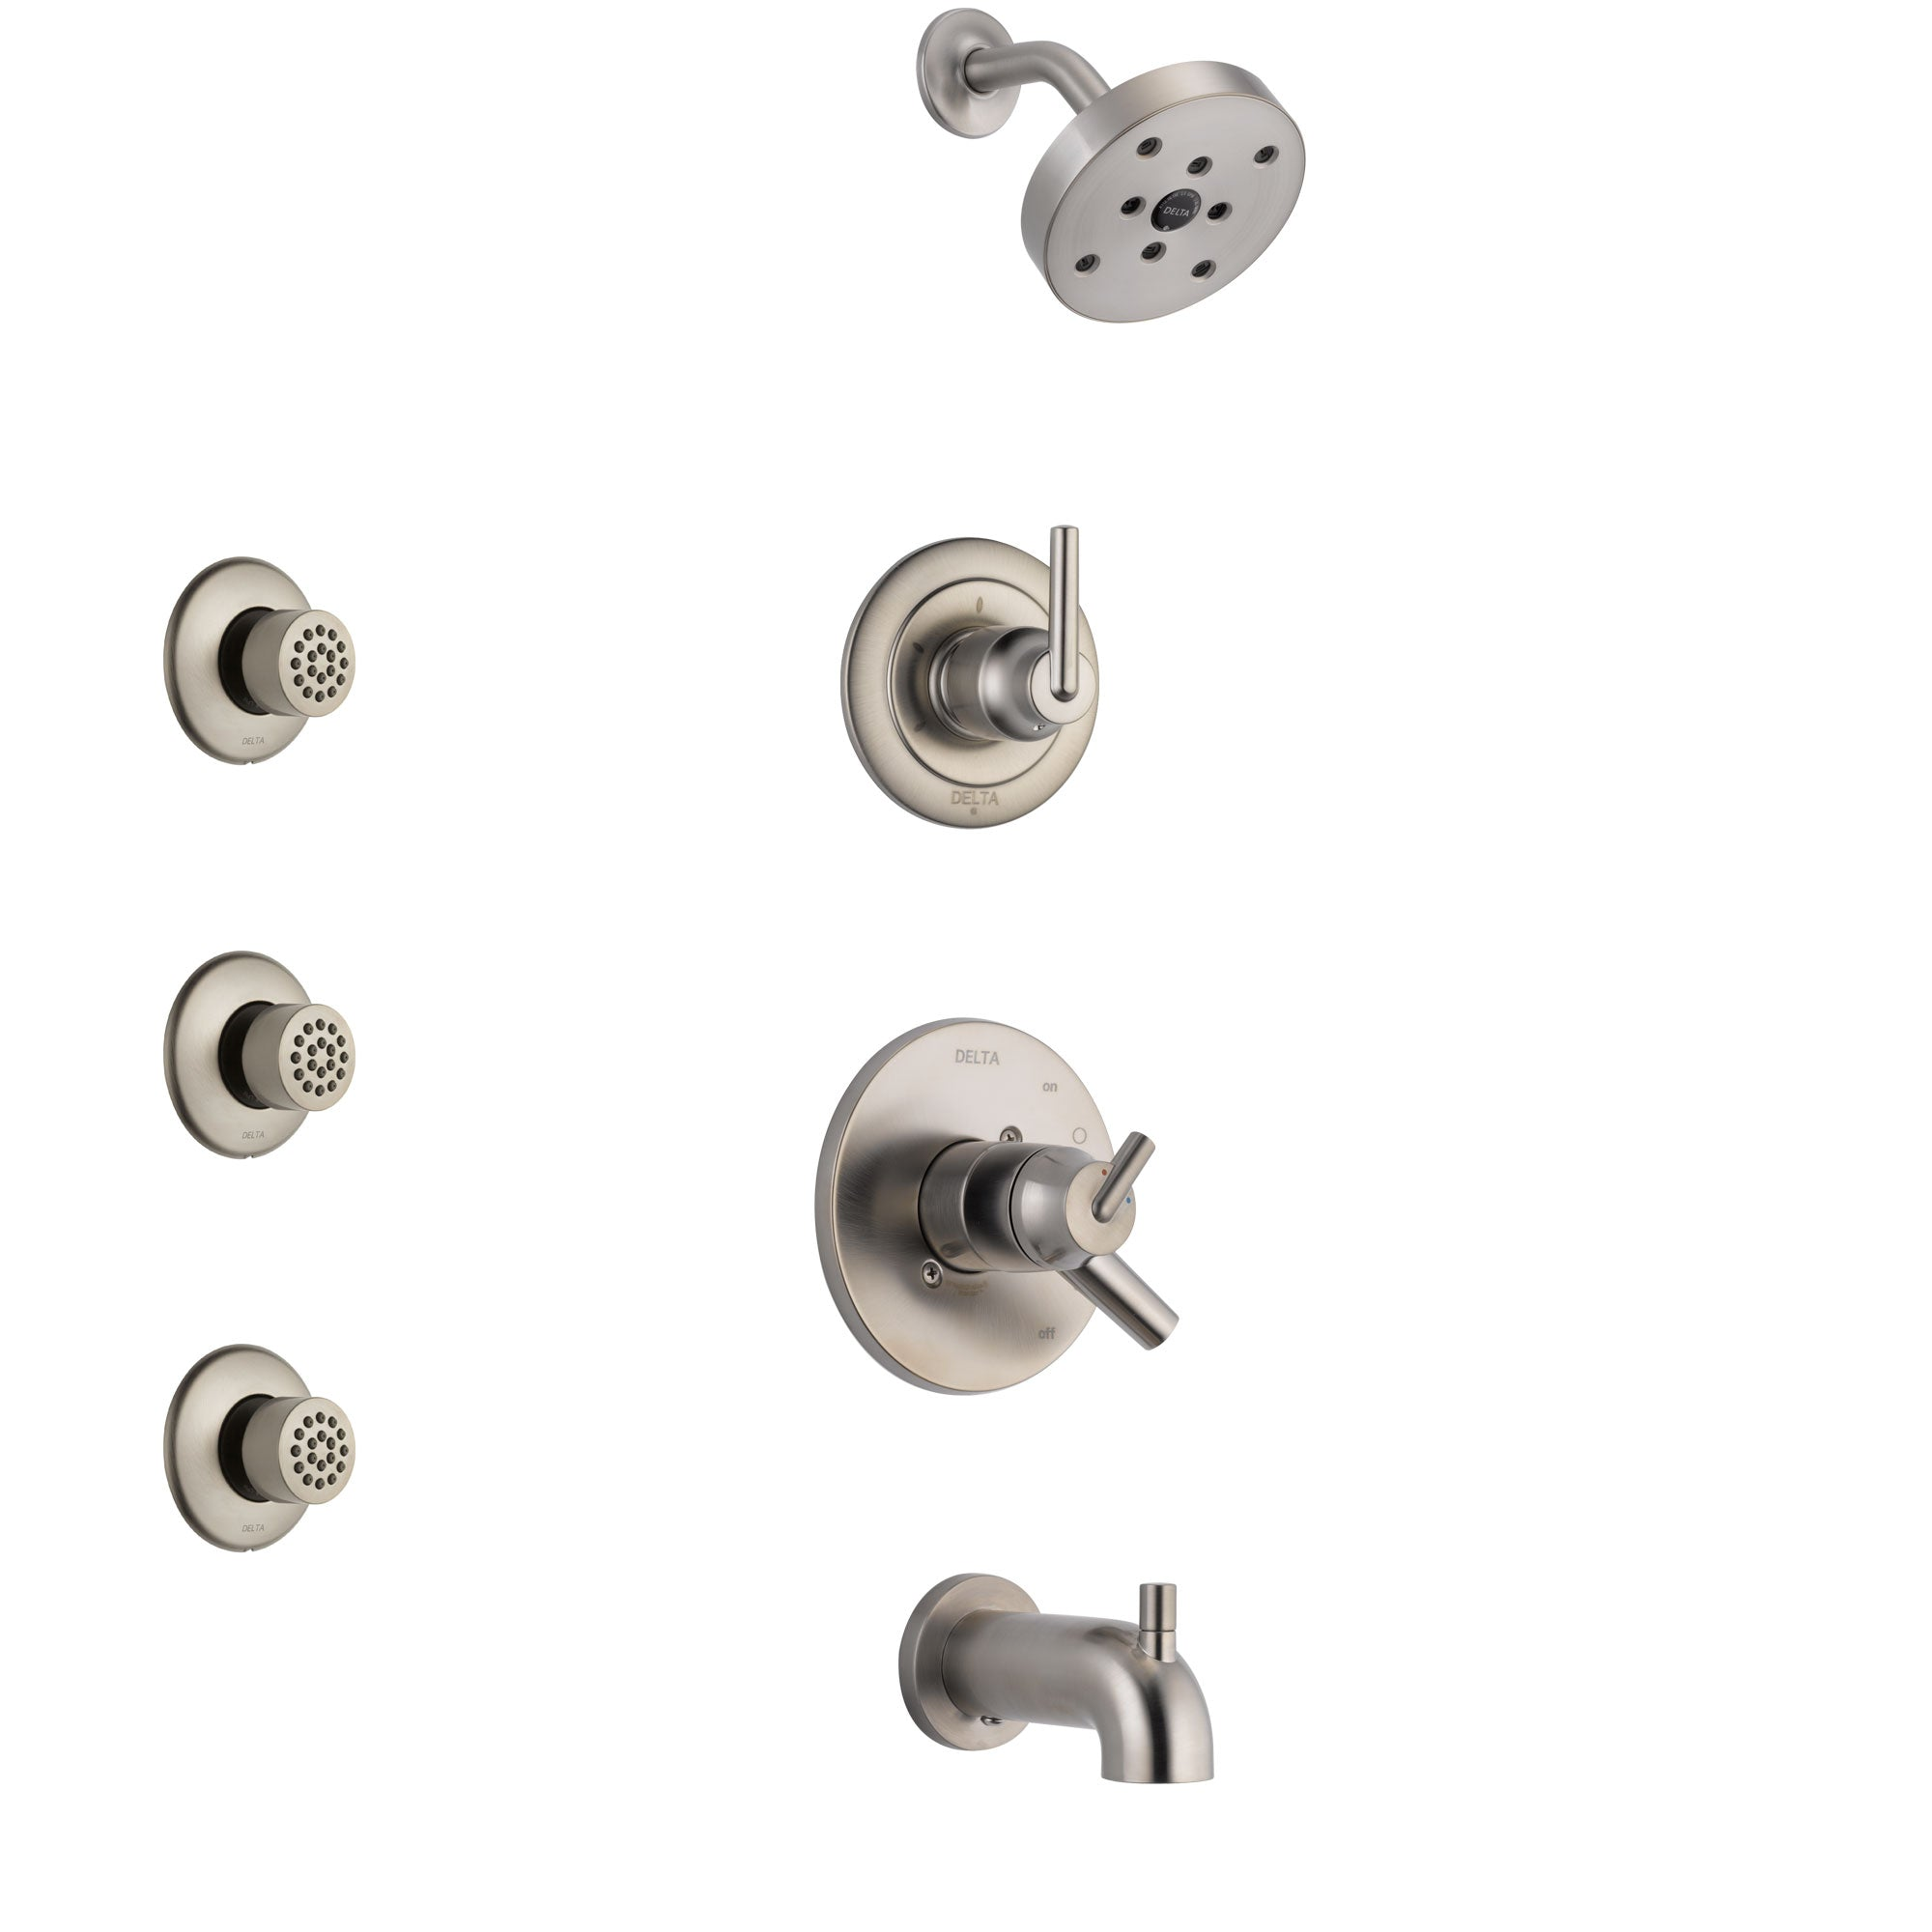 Delta Trinsic Stainless Steel Finish Tub and Shower System with Dual Control Handle, 3-Setting Diverter, Showerhead, and 3 Body Sprays SS17459SS2